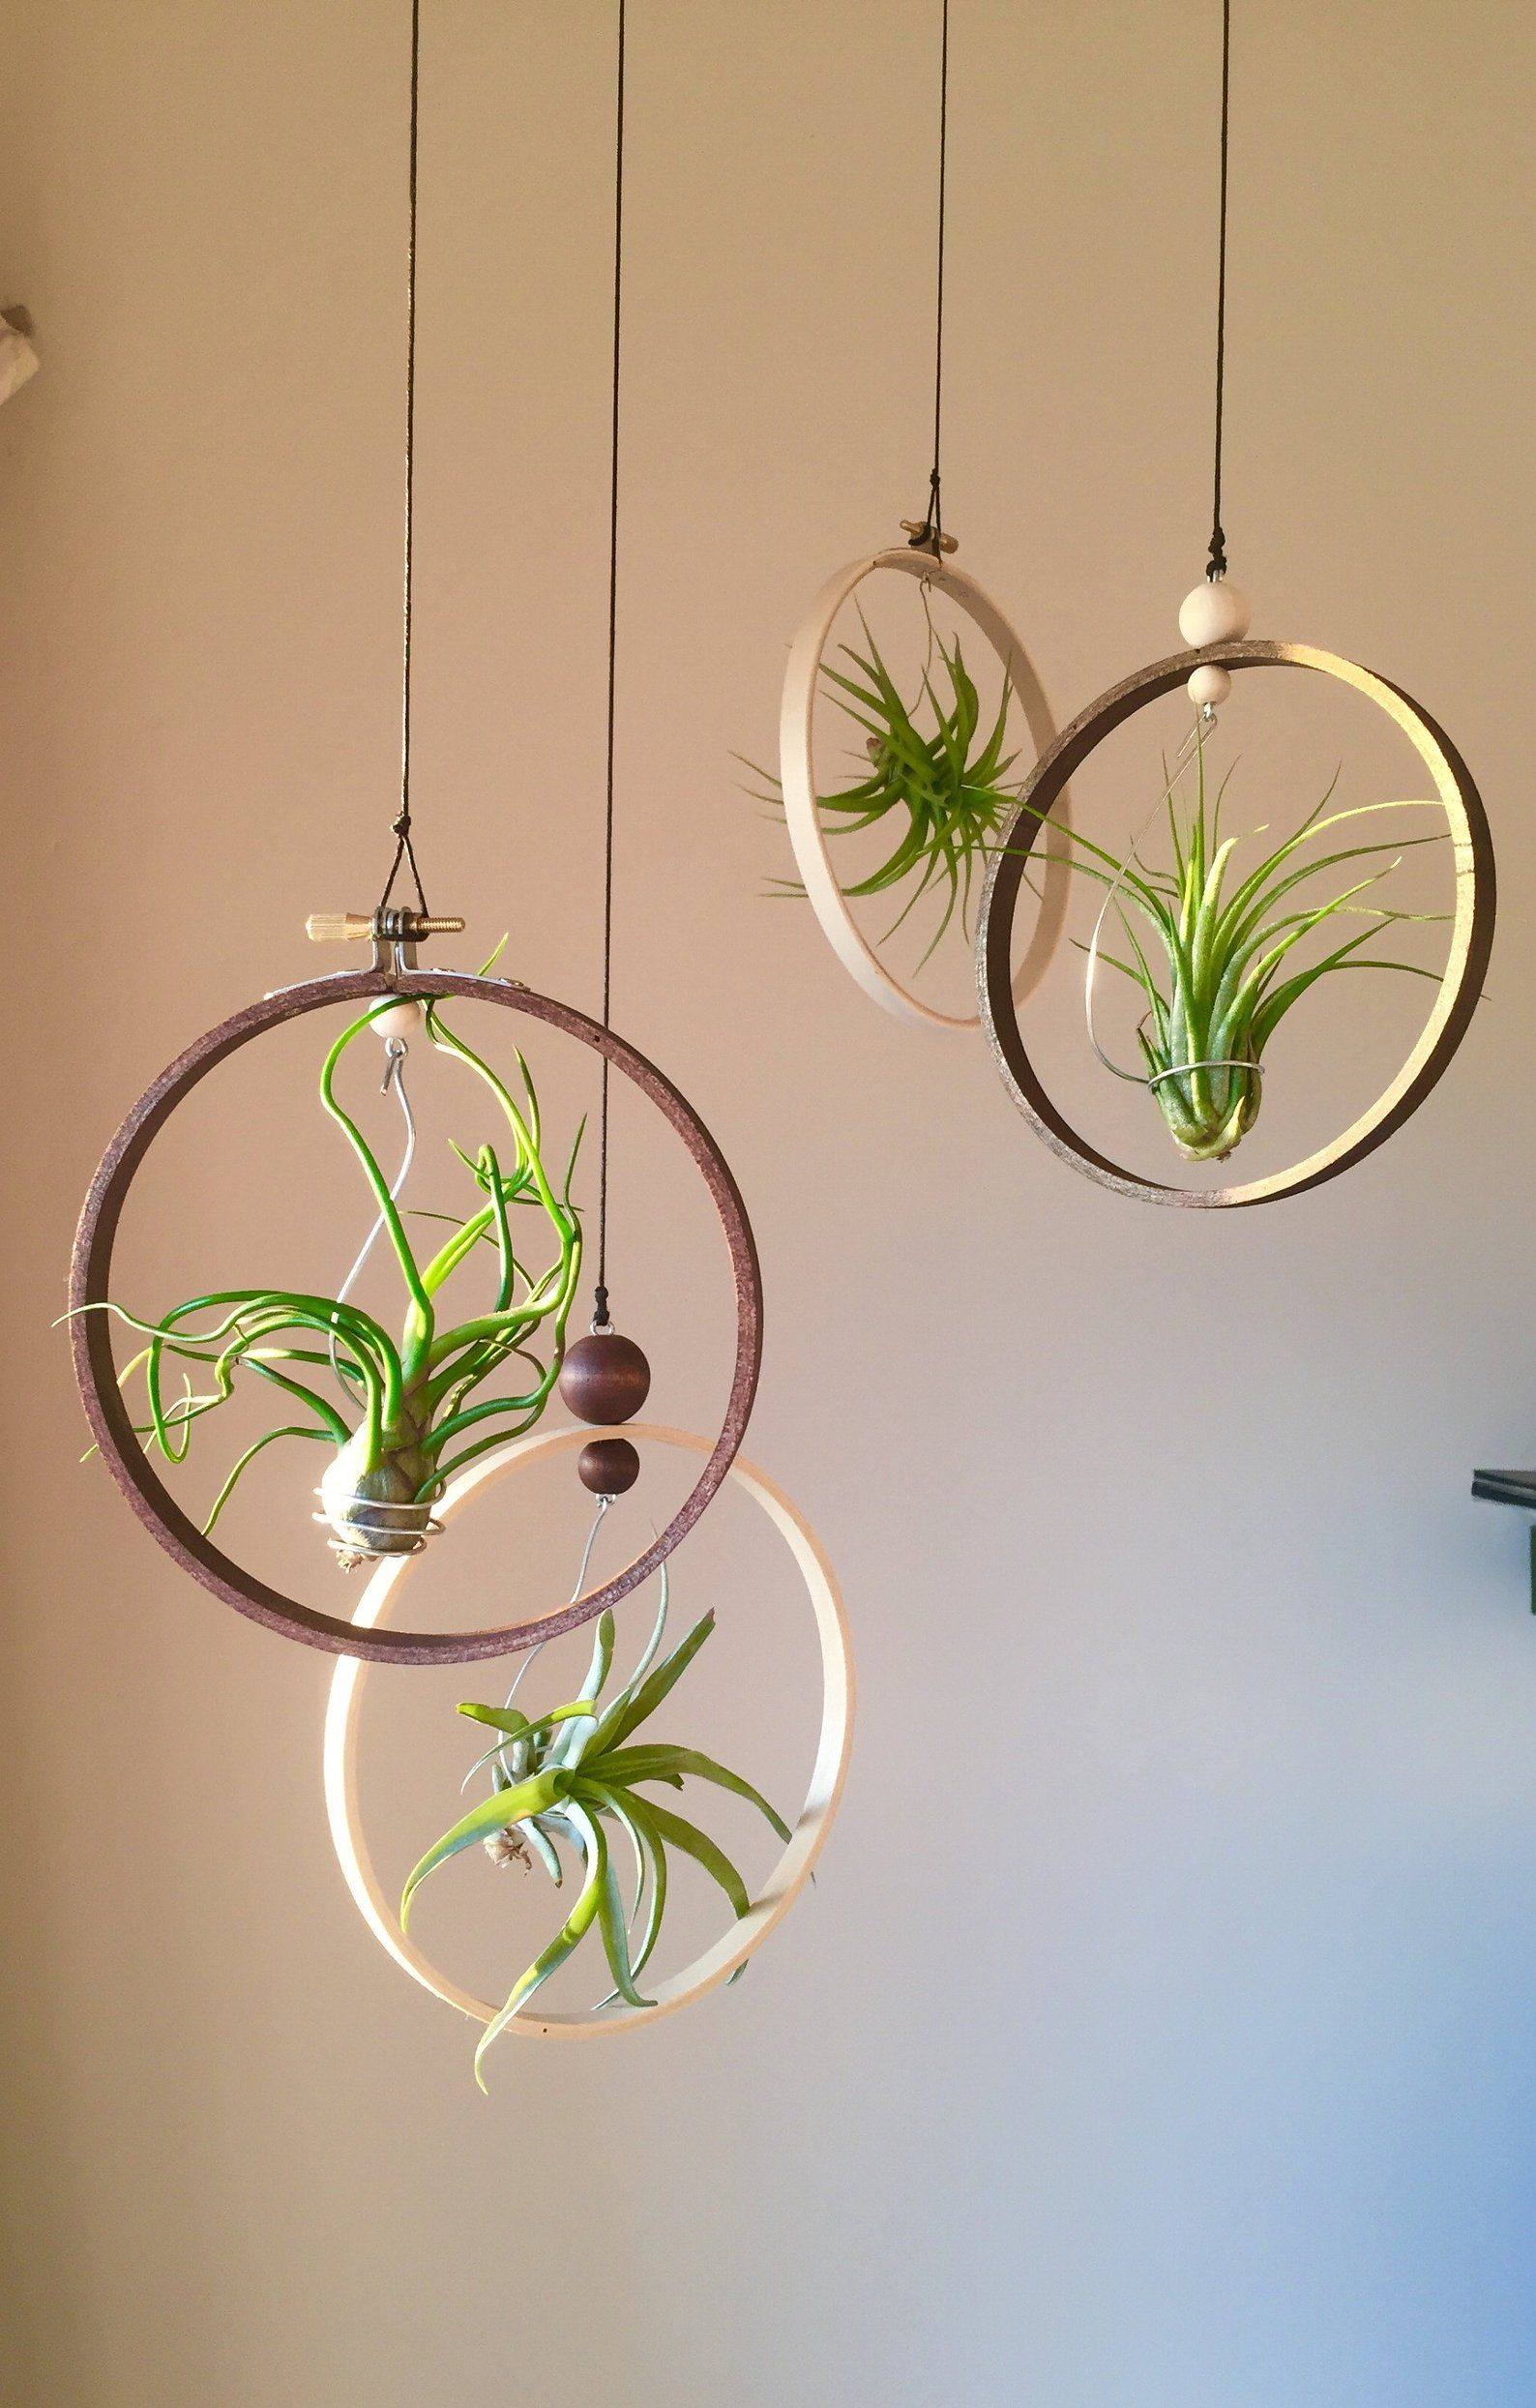 4-Pack Mixed Air Plant Set, Gift Idea, Hanging Tillandsia Holder, Terrarium, Airplants Display, Indoor Wood Planter, Plant Hanger, Wall Hang -   16 plants Hanging crafts ideas